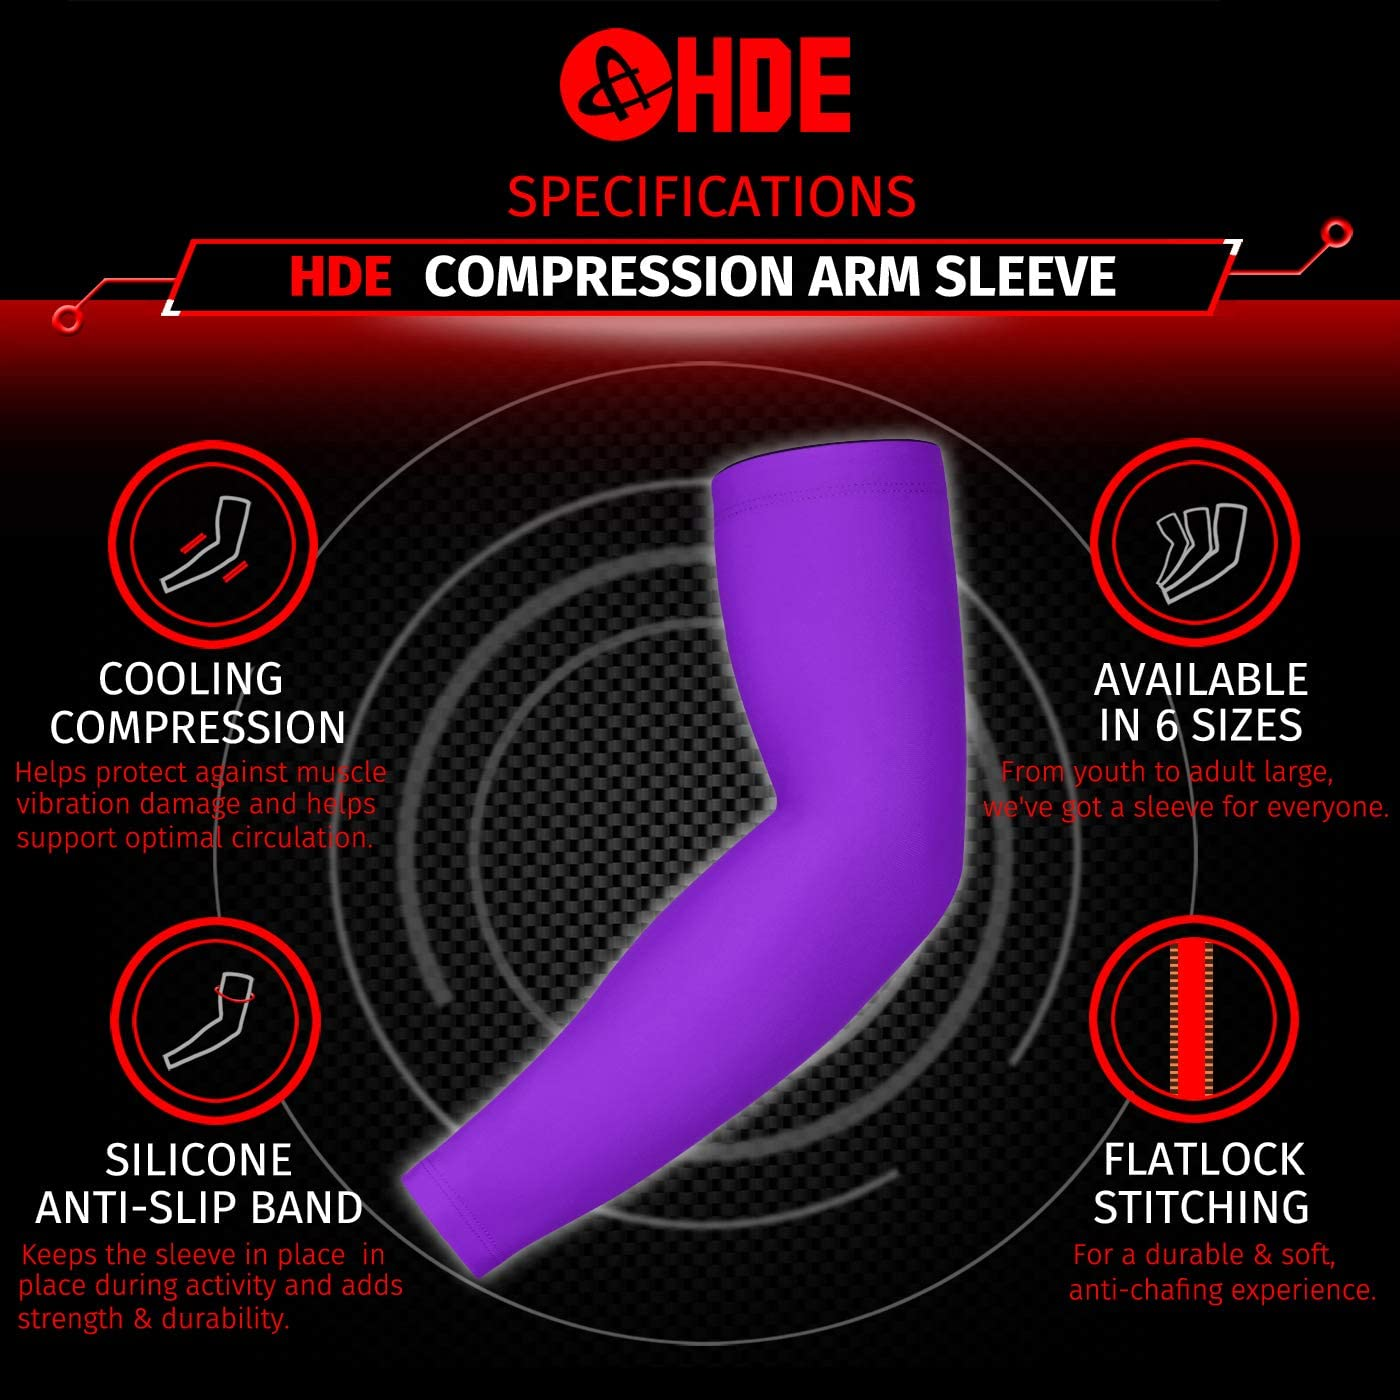 HDE Sports Compression Arm Sleeves for Kids Non-Slip Cover Arm Sleeve for Adults Baseball Football Basketball Moisture Wicking UV Protection